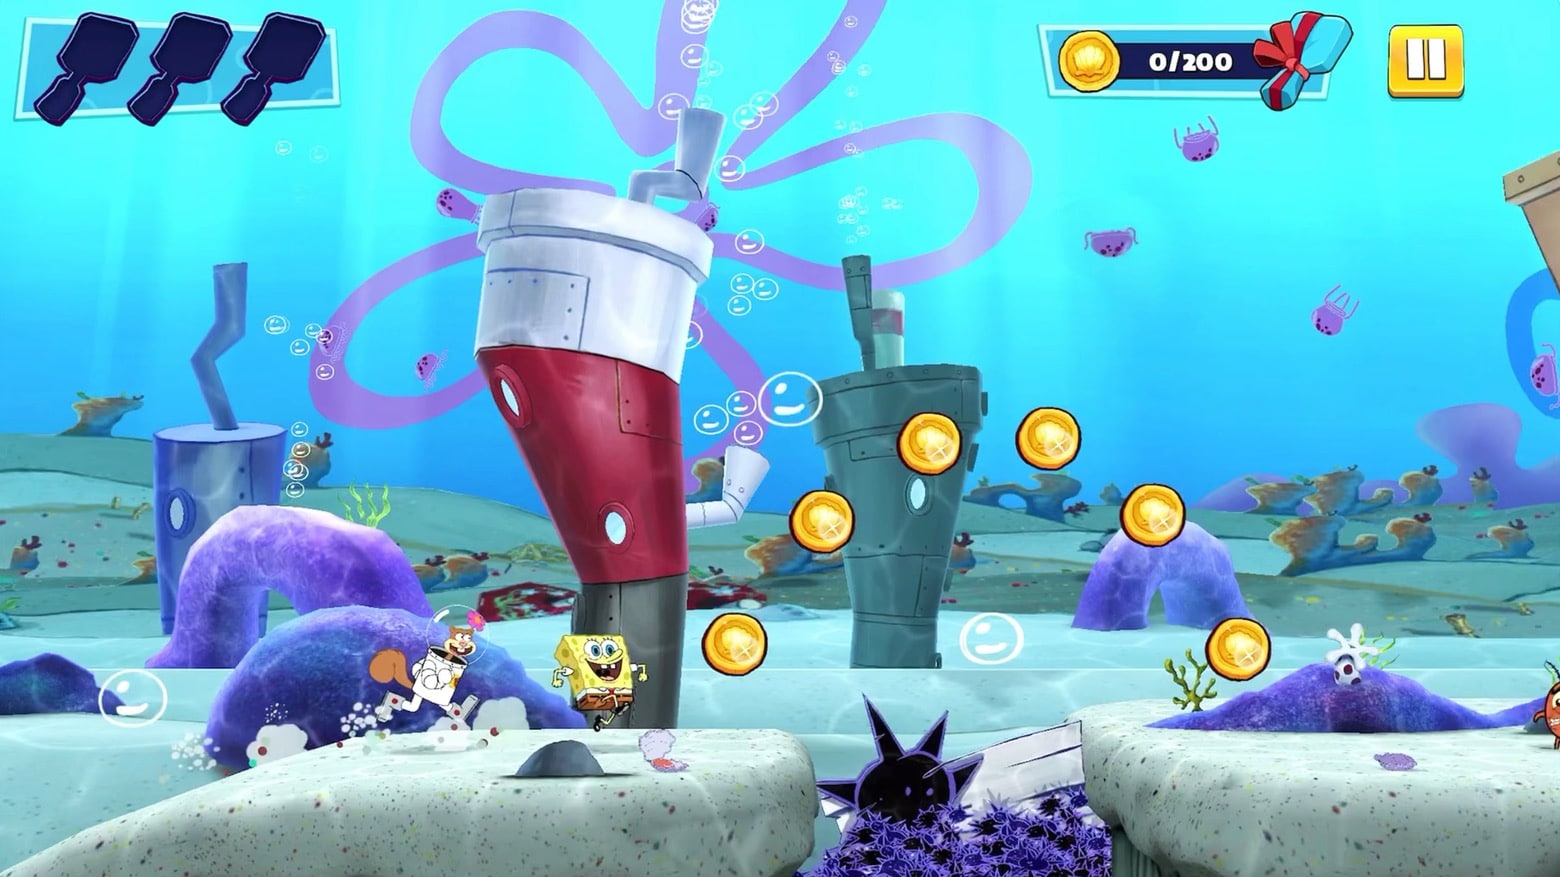 Help SpongeBob and friends defeat Plankton in Patty Pursuit on Apple Arcade